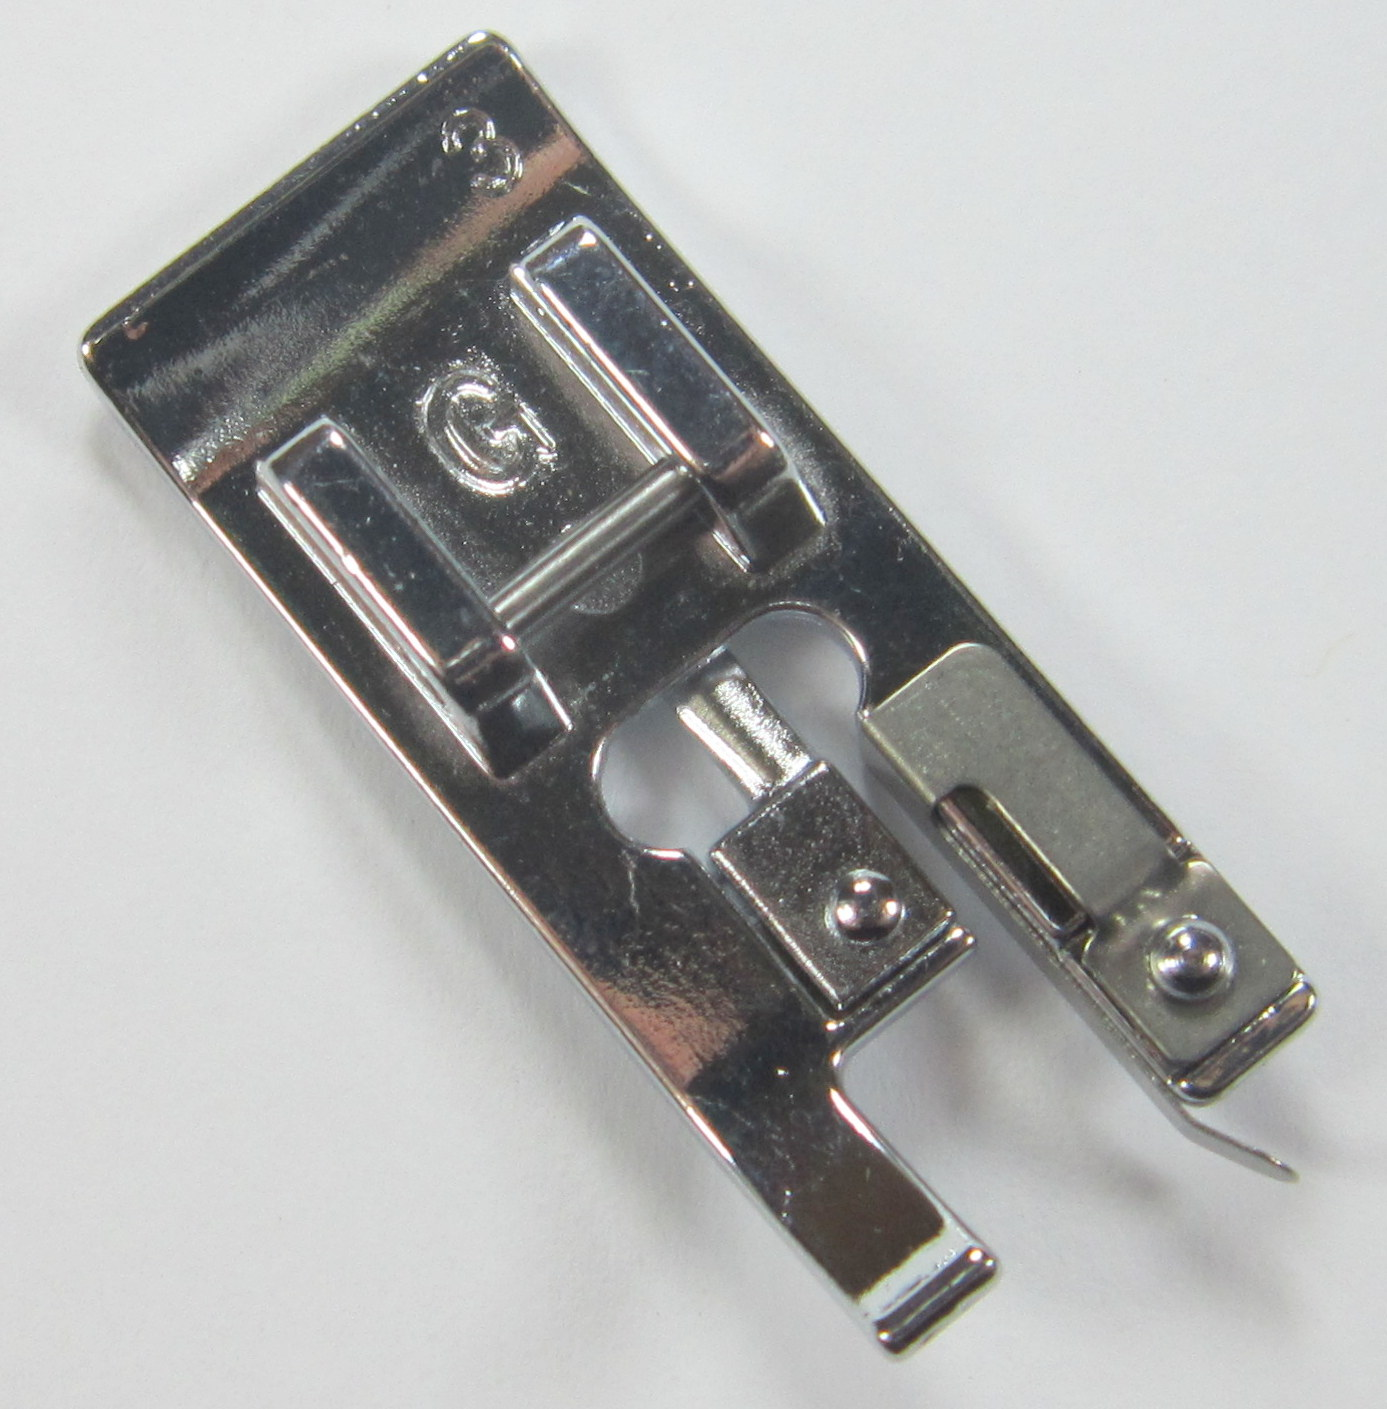 Singer Overcast Foot 006803008 Fits Singer Machines With Snap O Matic Feet See List In Description